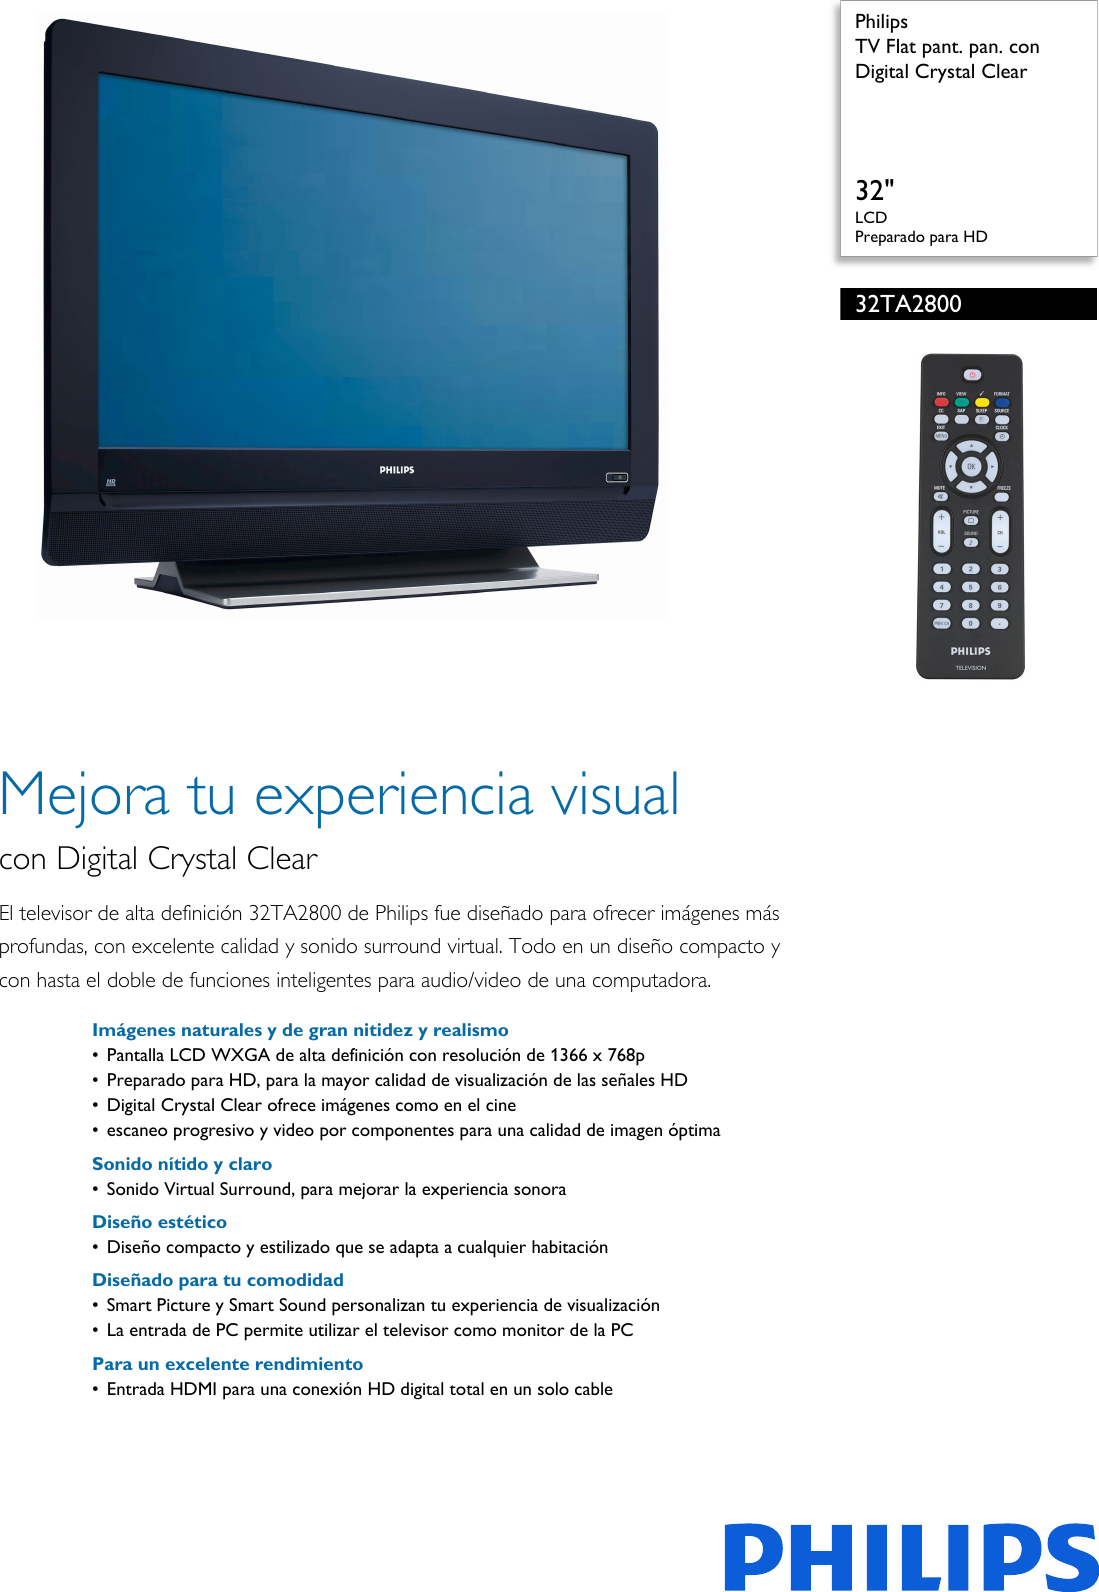 Philips 32TA2800/55 TV Flat Pant  Pan  Con Digital Crystal